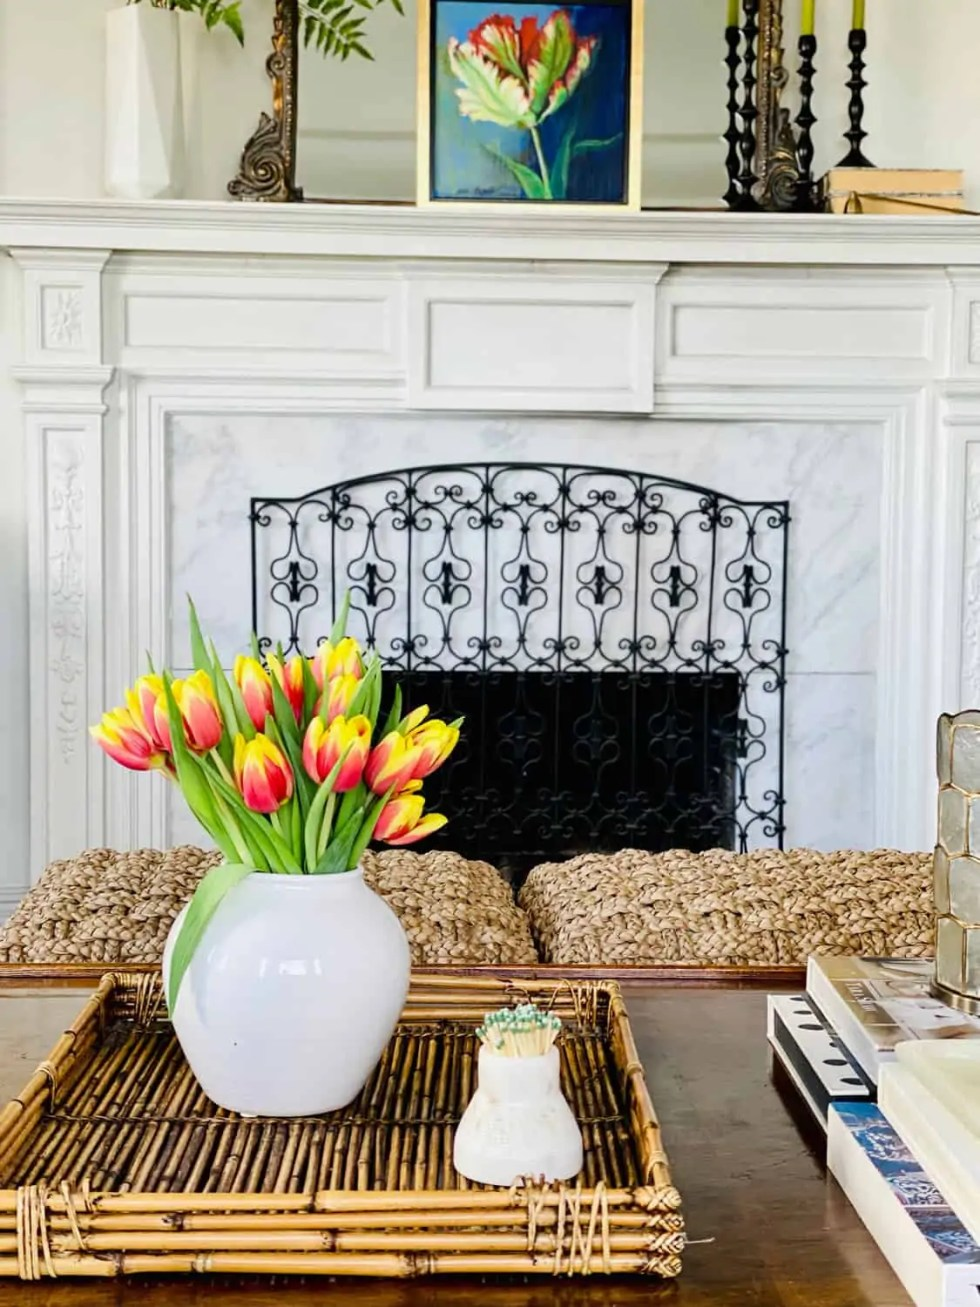 Coffee Table Styling with Tulips and White ceramic vase from Target